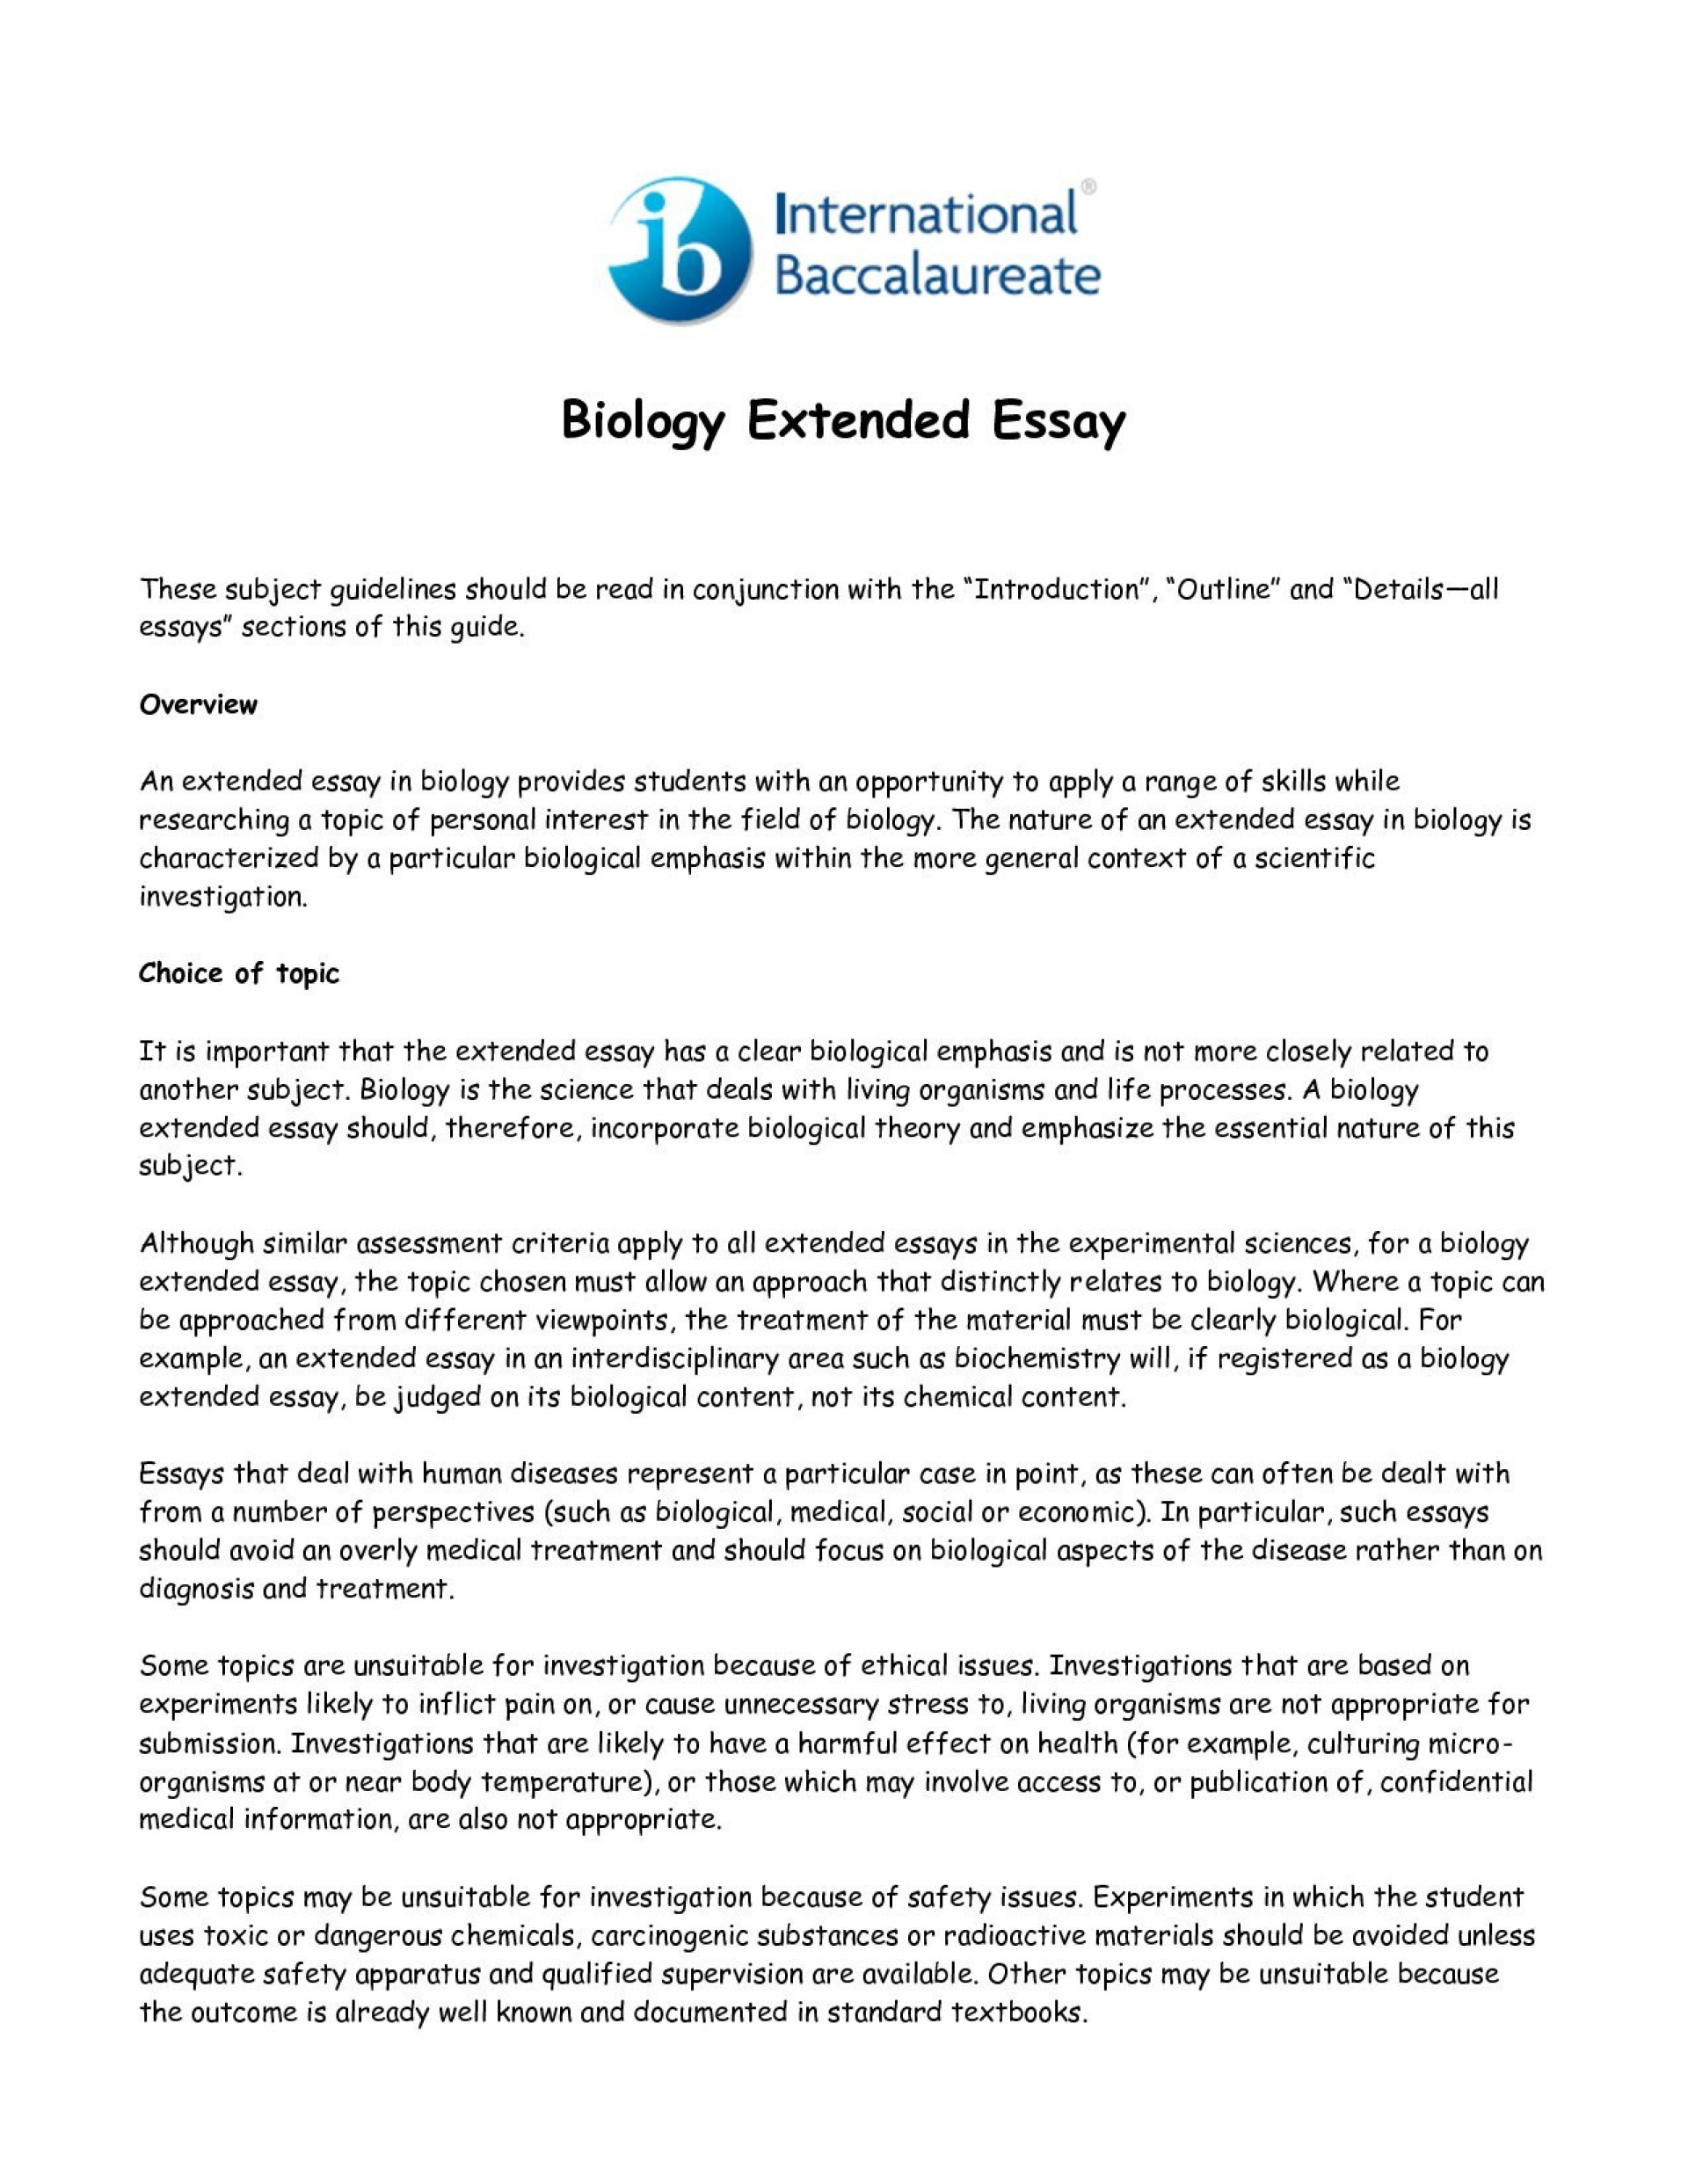 002 Aphrodite Essays Biology Essay Topics Stunning Prompts Extended Questions Question And Answer 1920